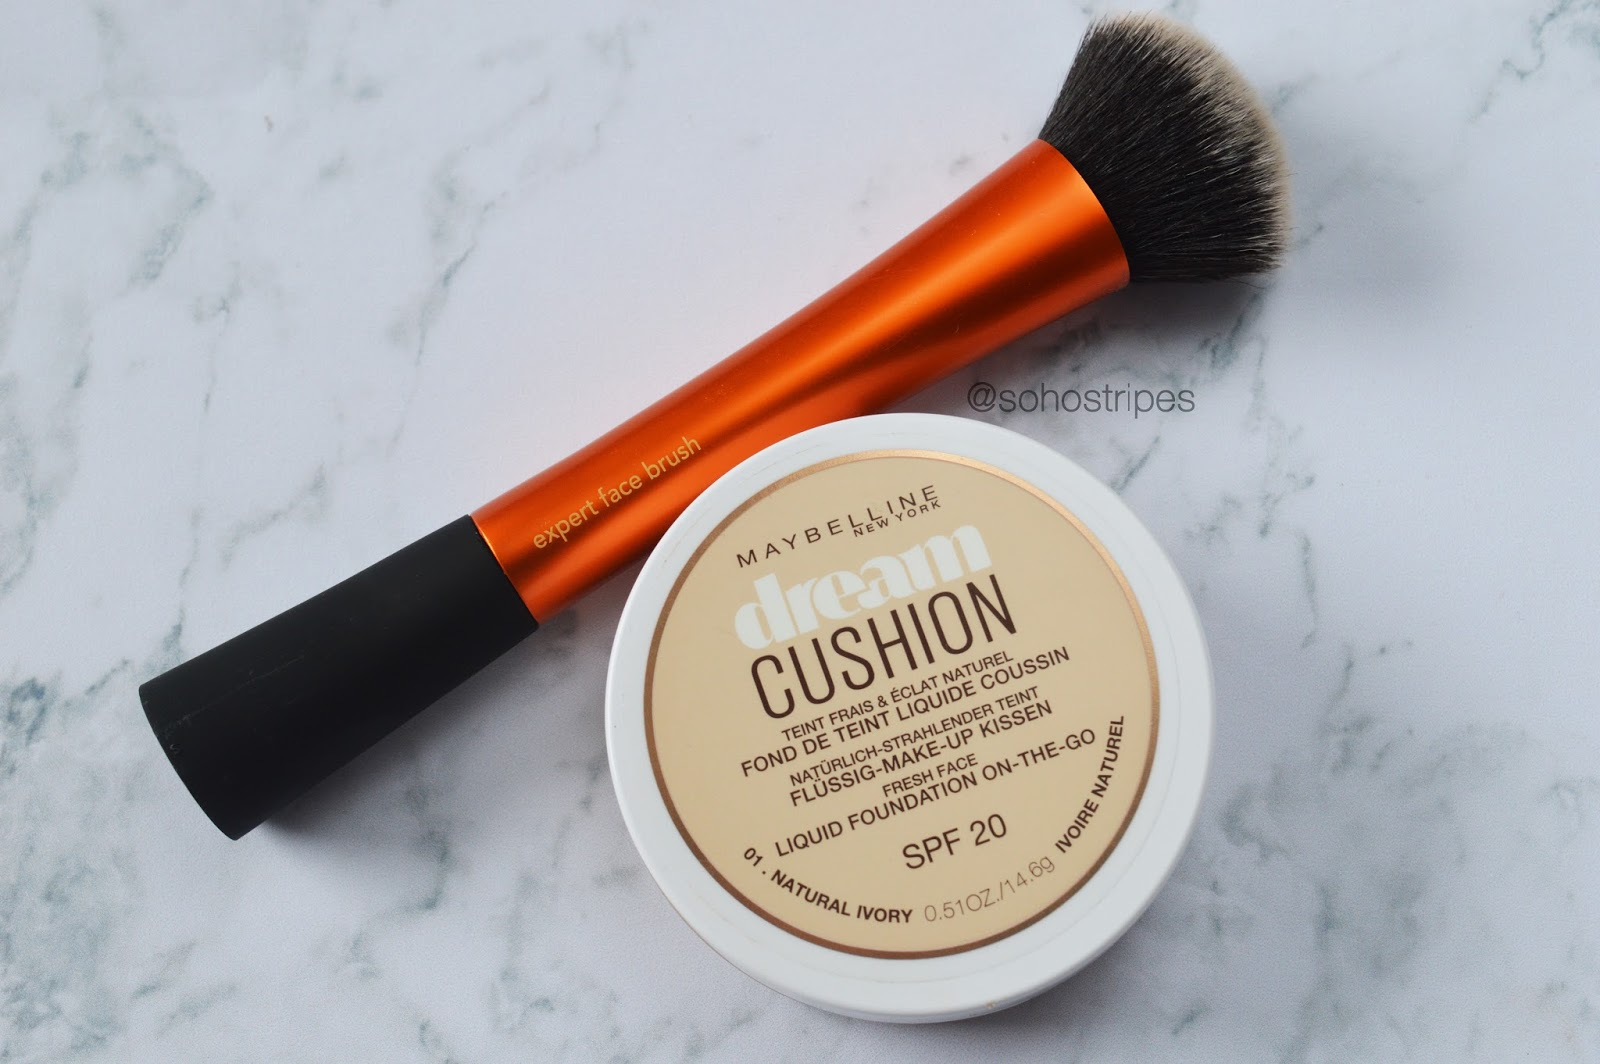 Maybelline Dream Cushion Foundation Natural Ivory 01 & Real Techniques Expert Face Brush